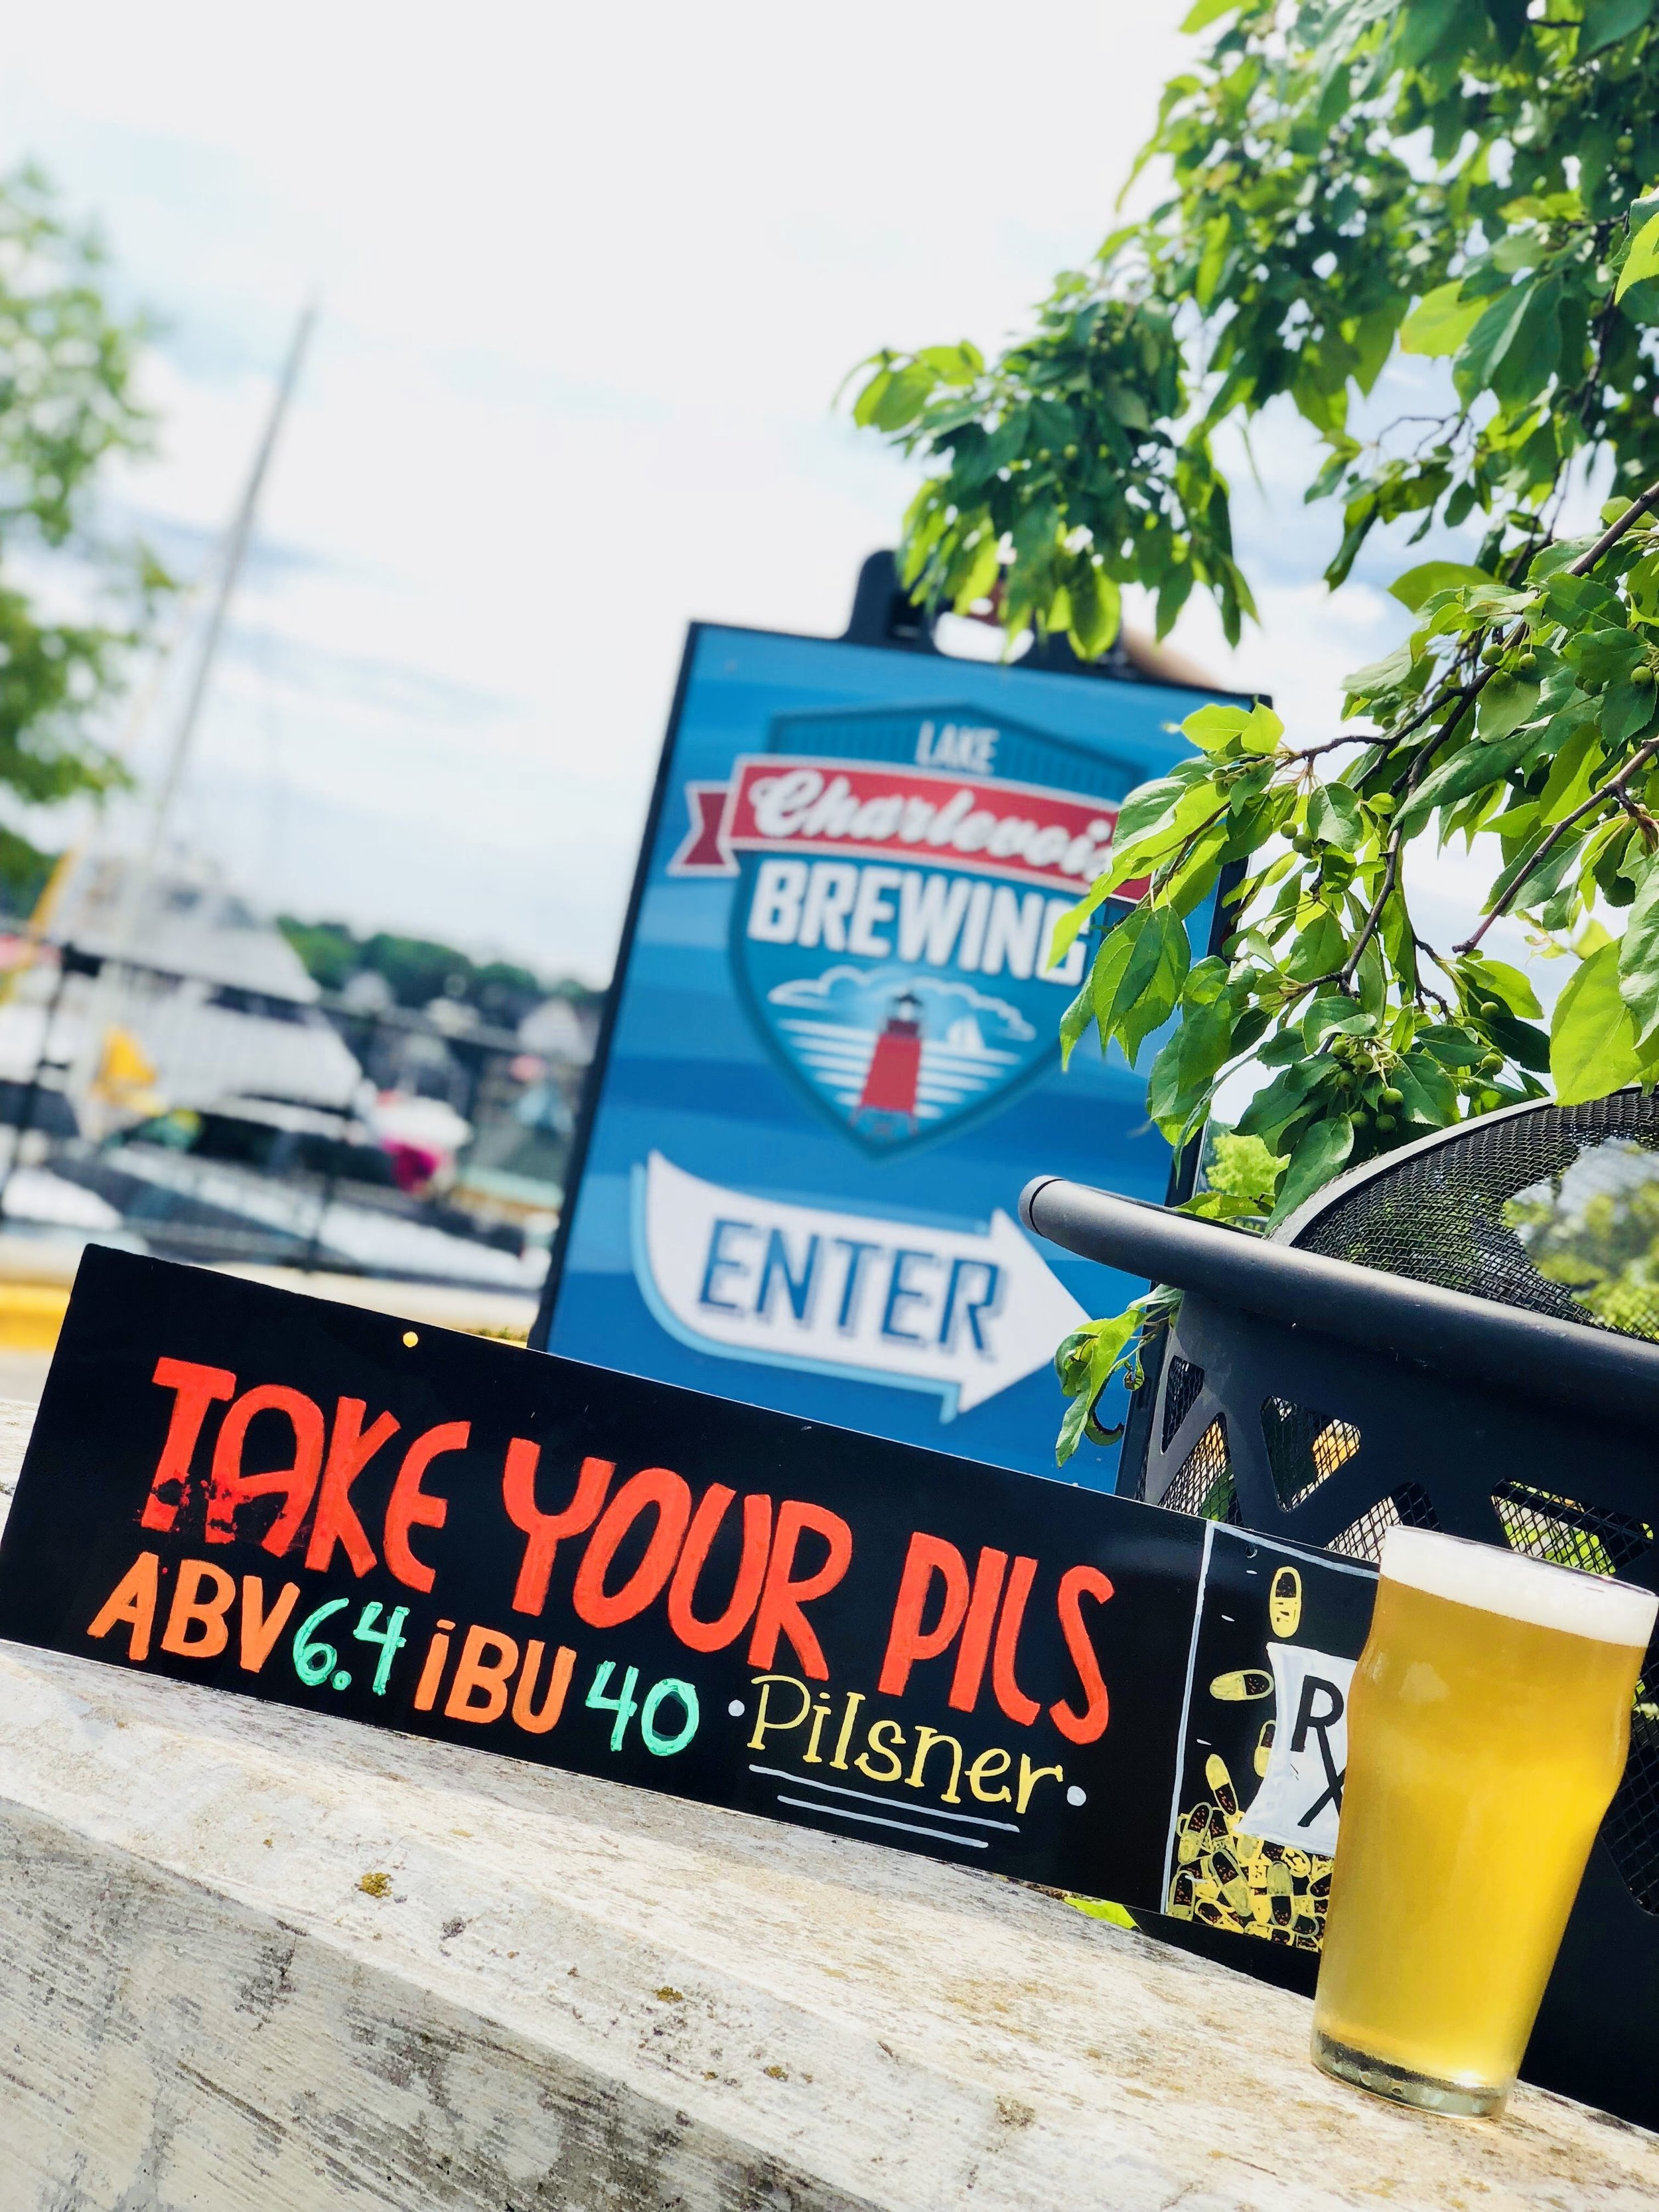 TAKE YOUR PILS, GERMAN PILSNER: 6.4% ABV - 40 IBU   Just as the doctor ordered, our lovely pilsen malt lager is back and ready to kick your summer relaxation into high gear. Take only as perscribed.